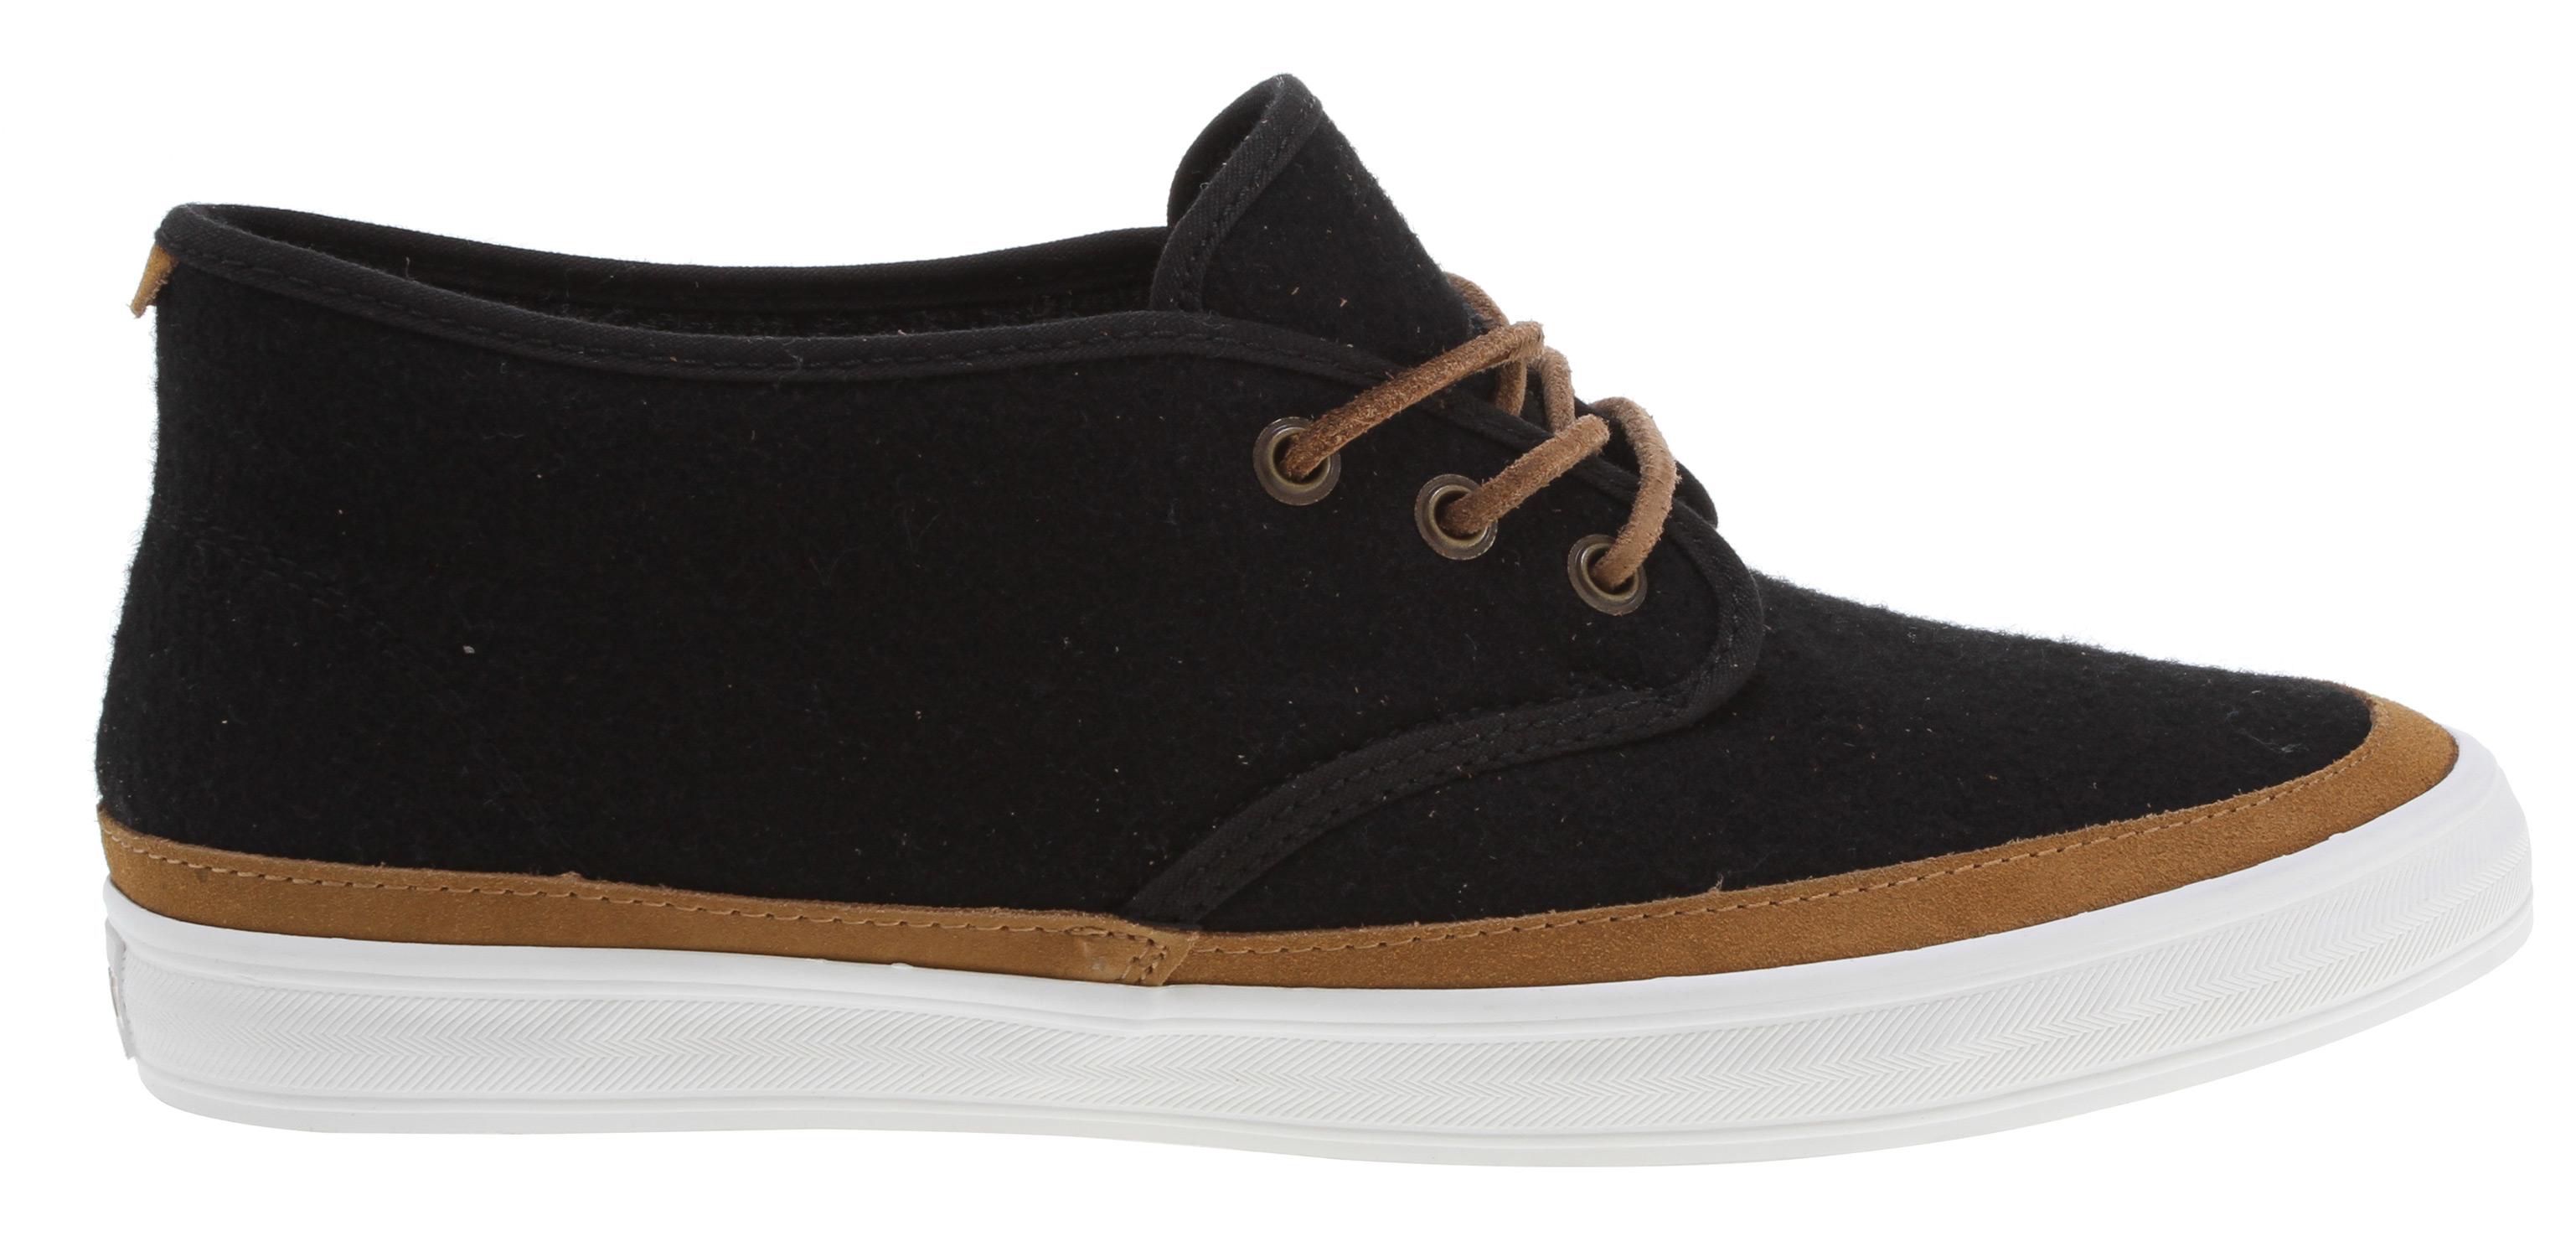 Key Features of the Gravis Quarters Wool Shoes: quality wool uppers canvas lining textured foxing latex with rubber heel wedge footbed high traction molded rubber outsole - $55.95